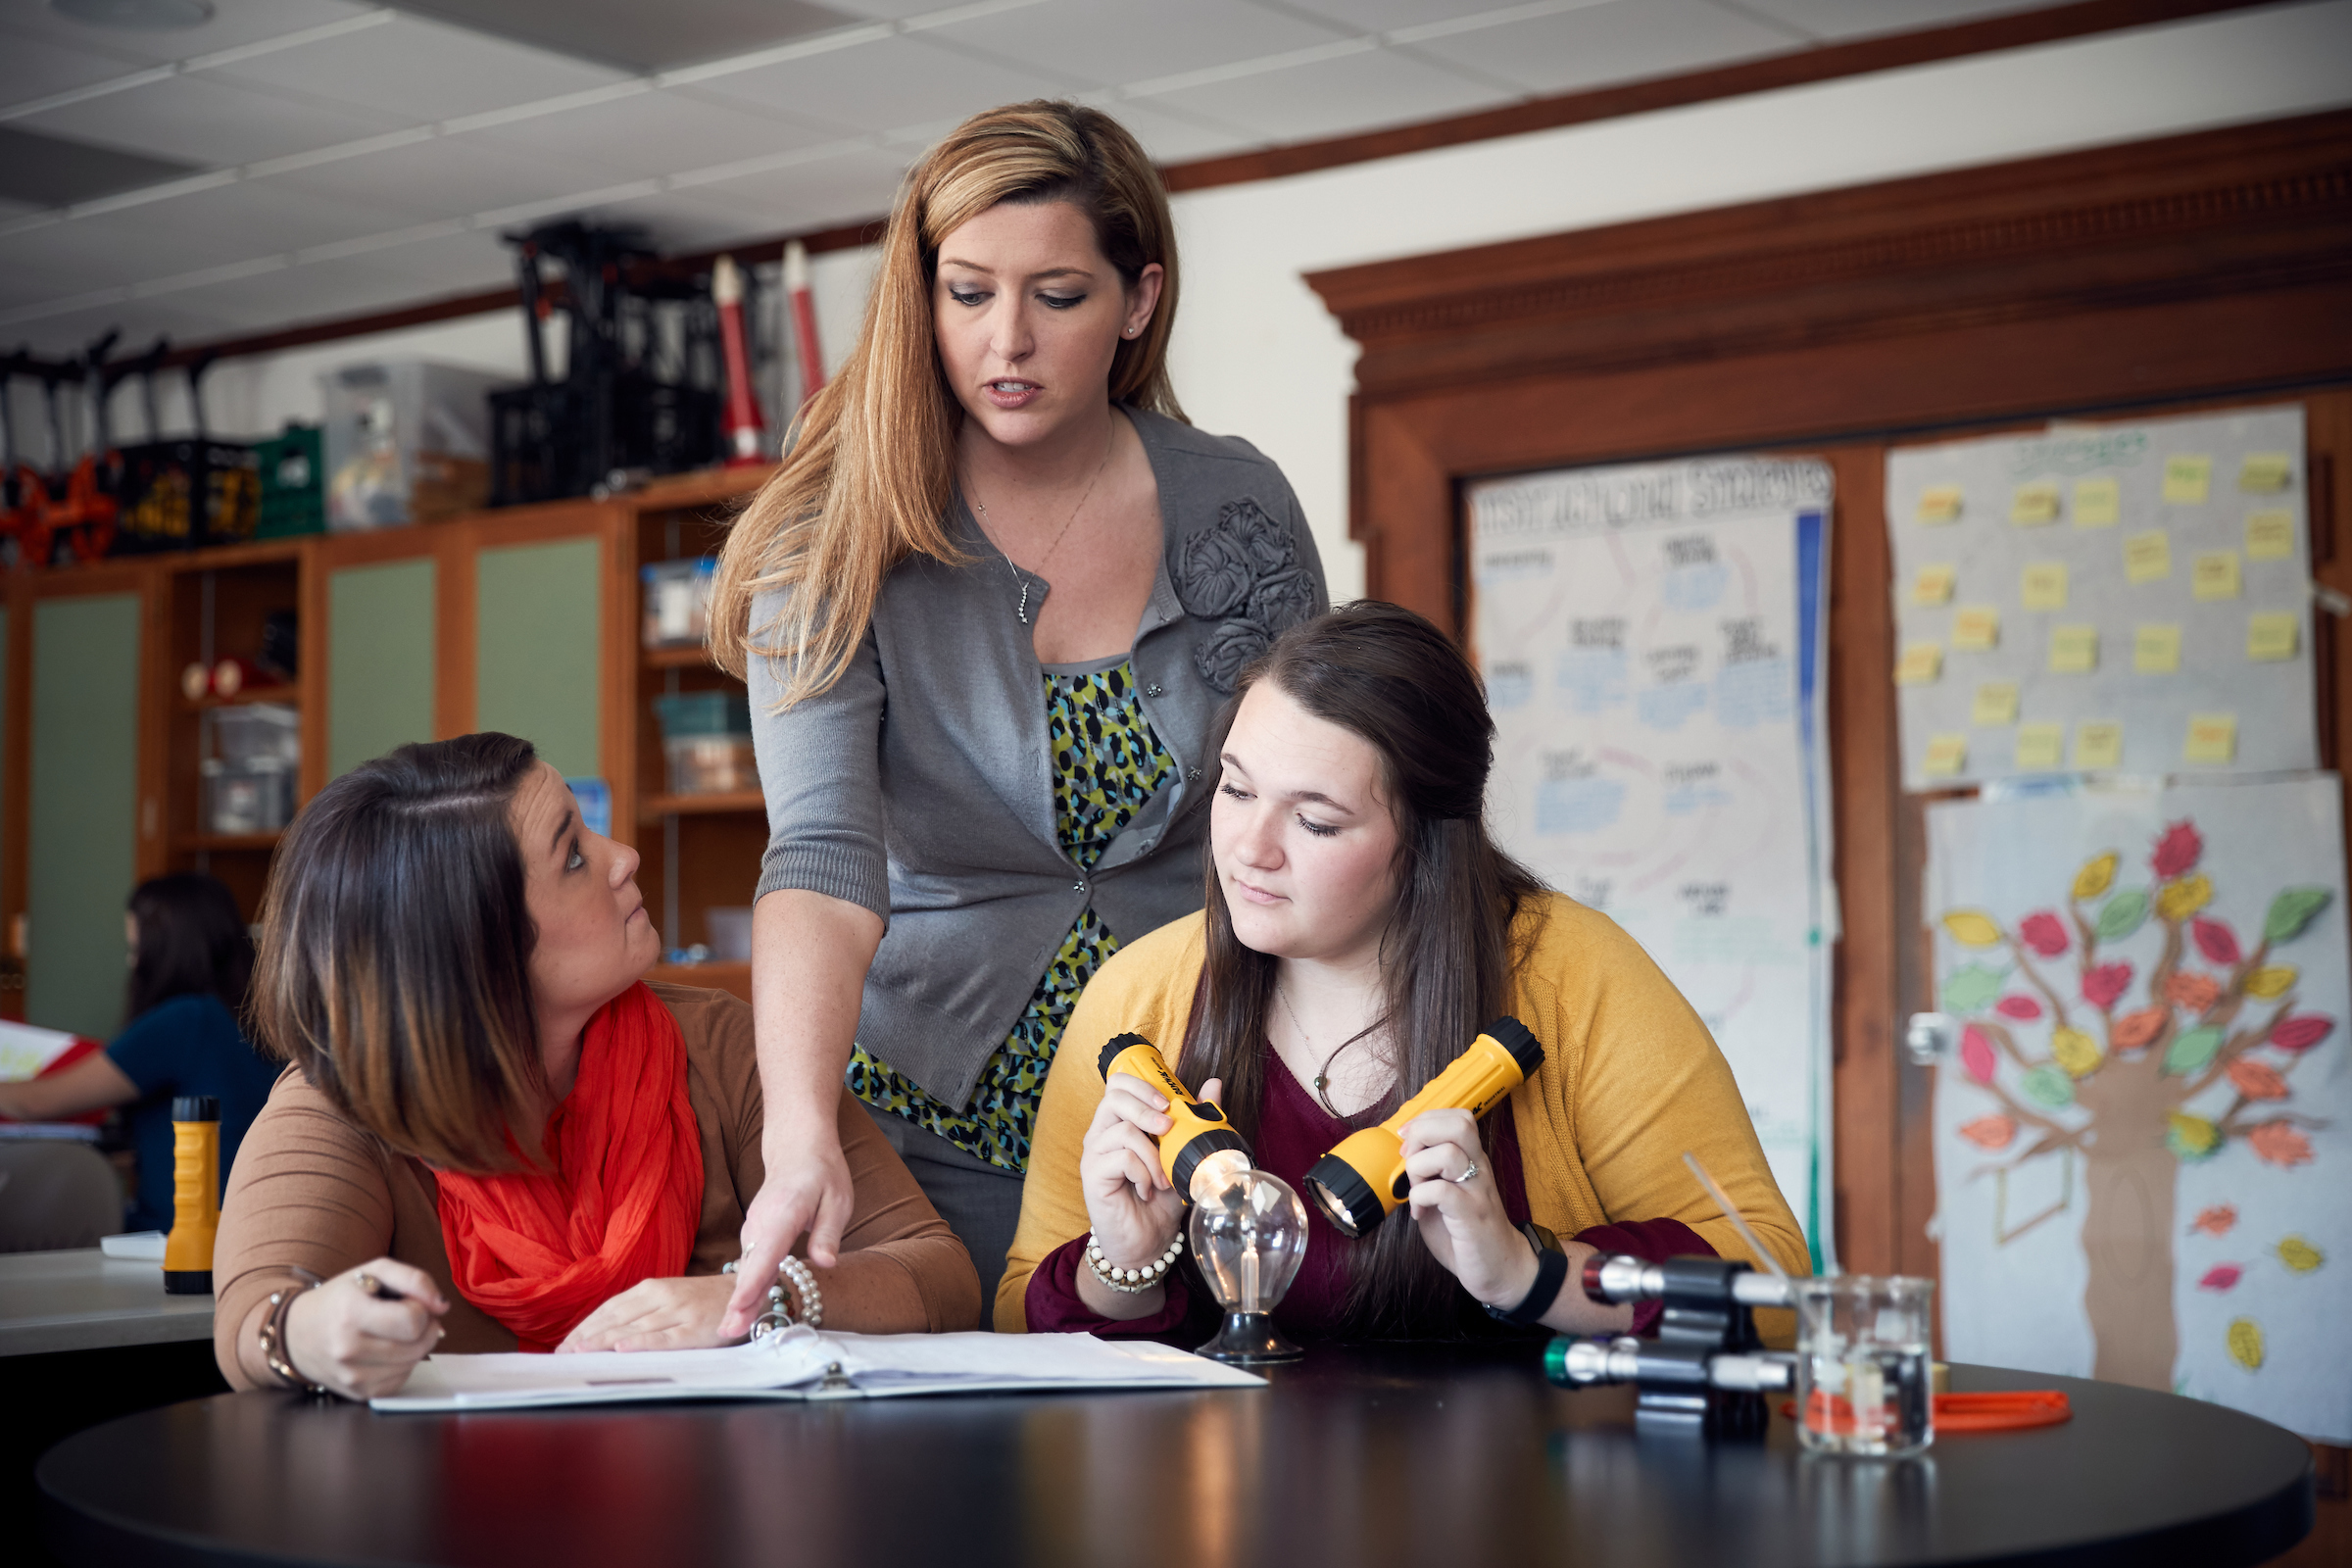 A teacher helps her students with a science project.